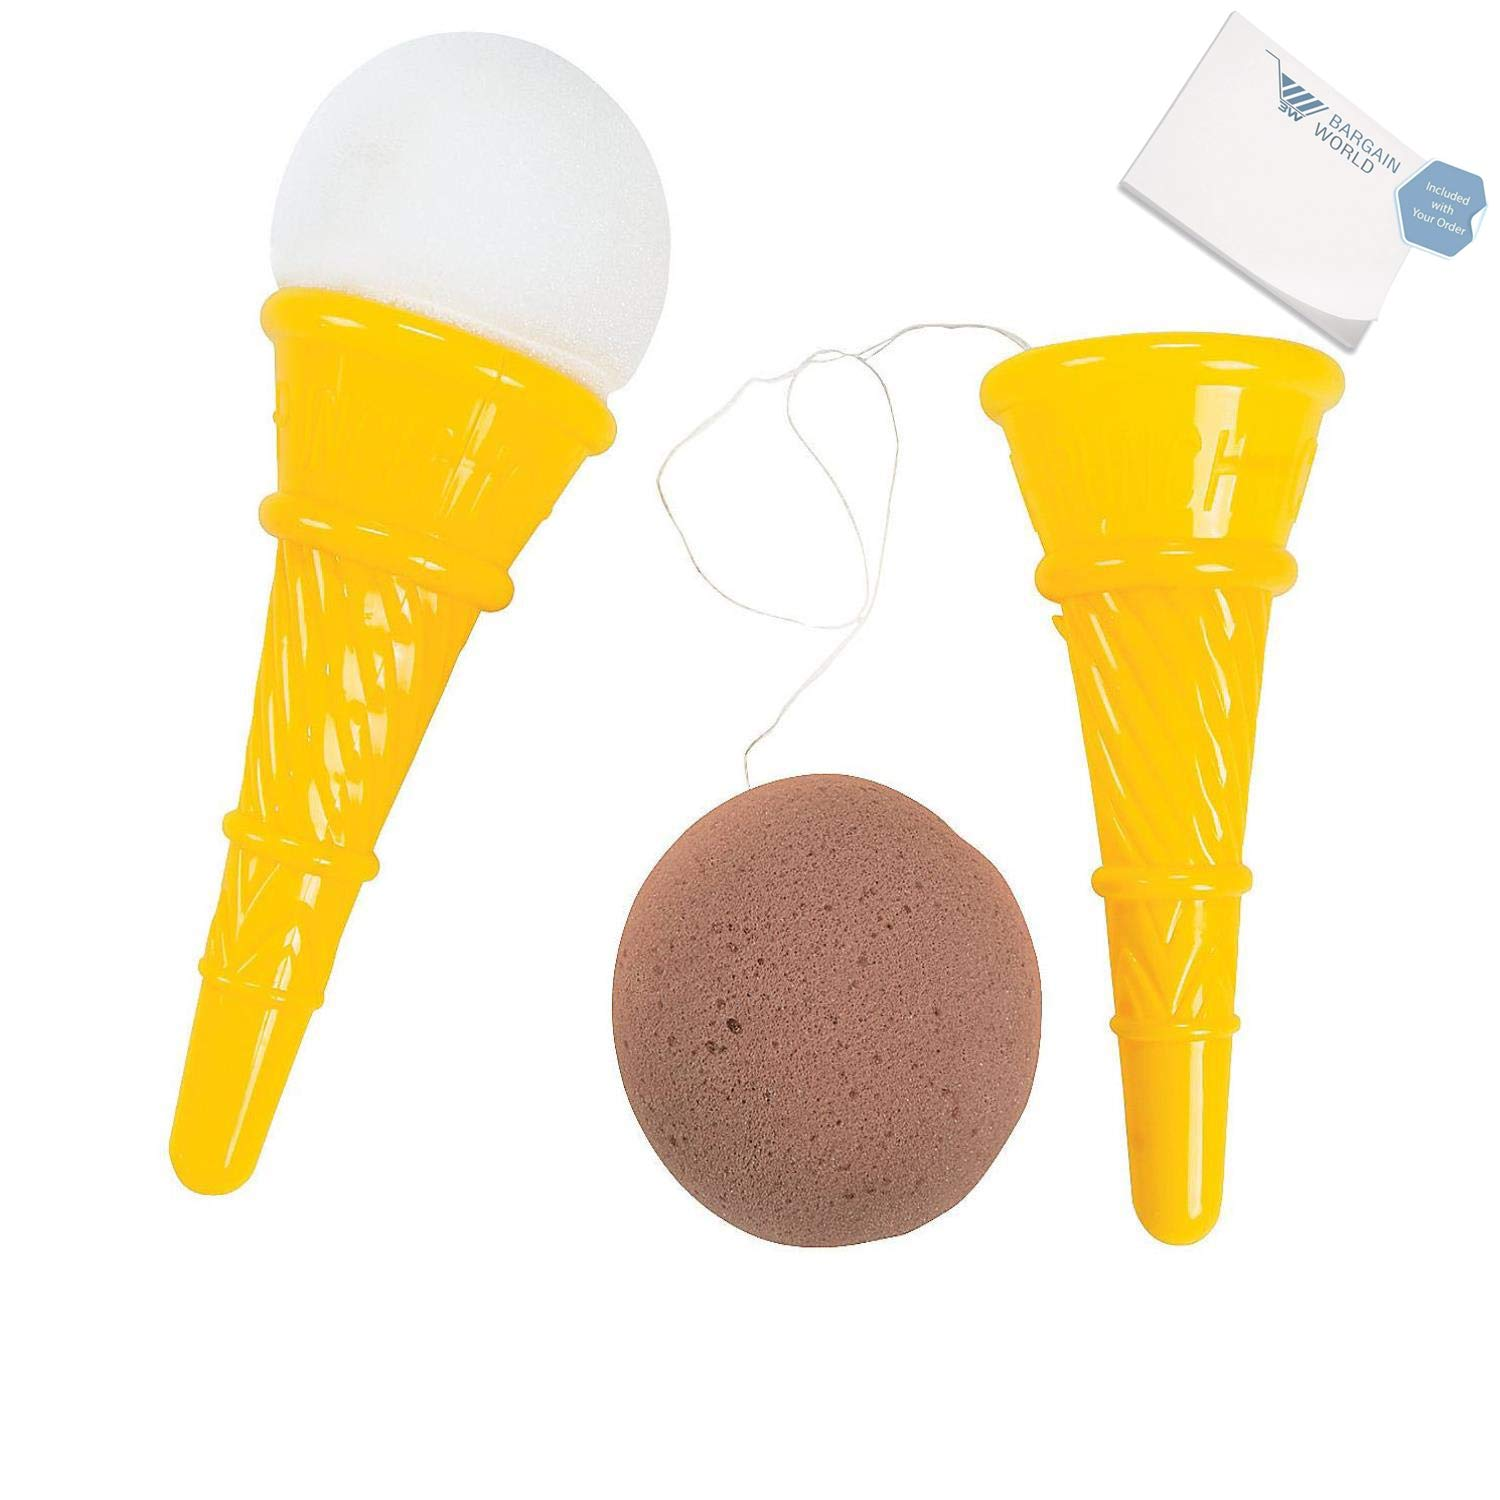 Bargain World Plastic Jumbo Ice Cream Cone Shooter (With Sticky Notes)